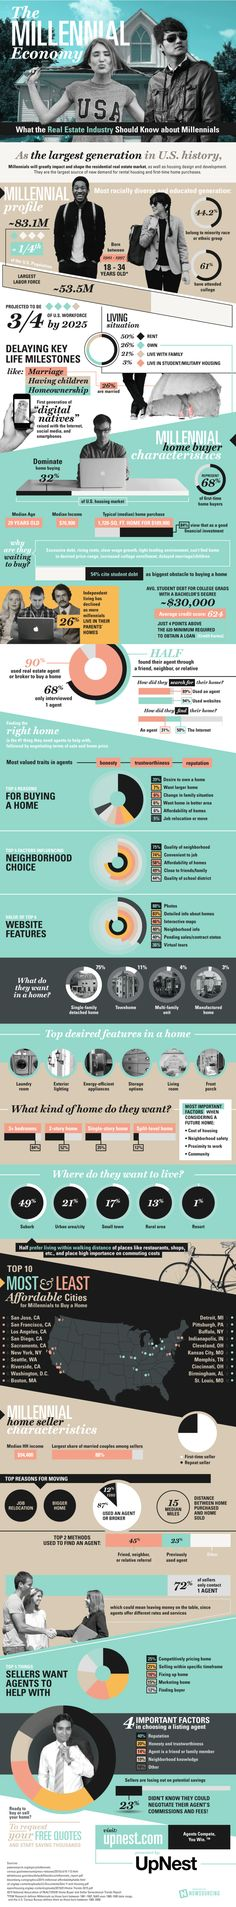 What Do Millennials And Digital Natives Think About And Look For With Real Estate, Home Buying and Rental Housing? #infographic